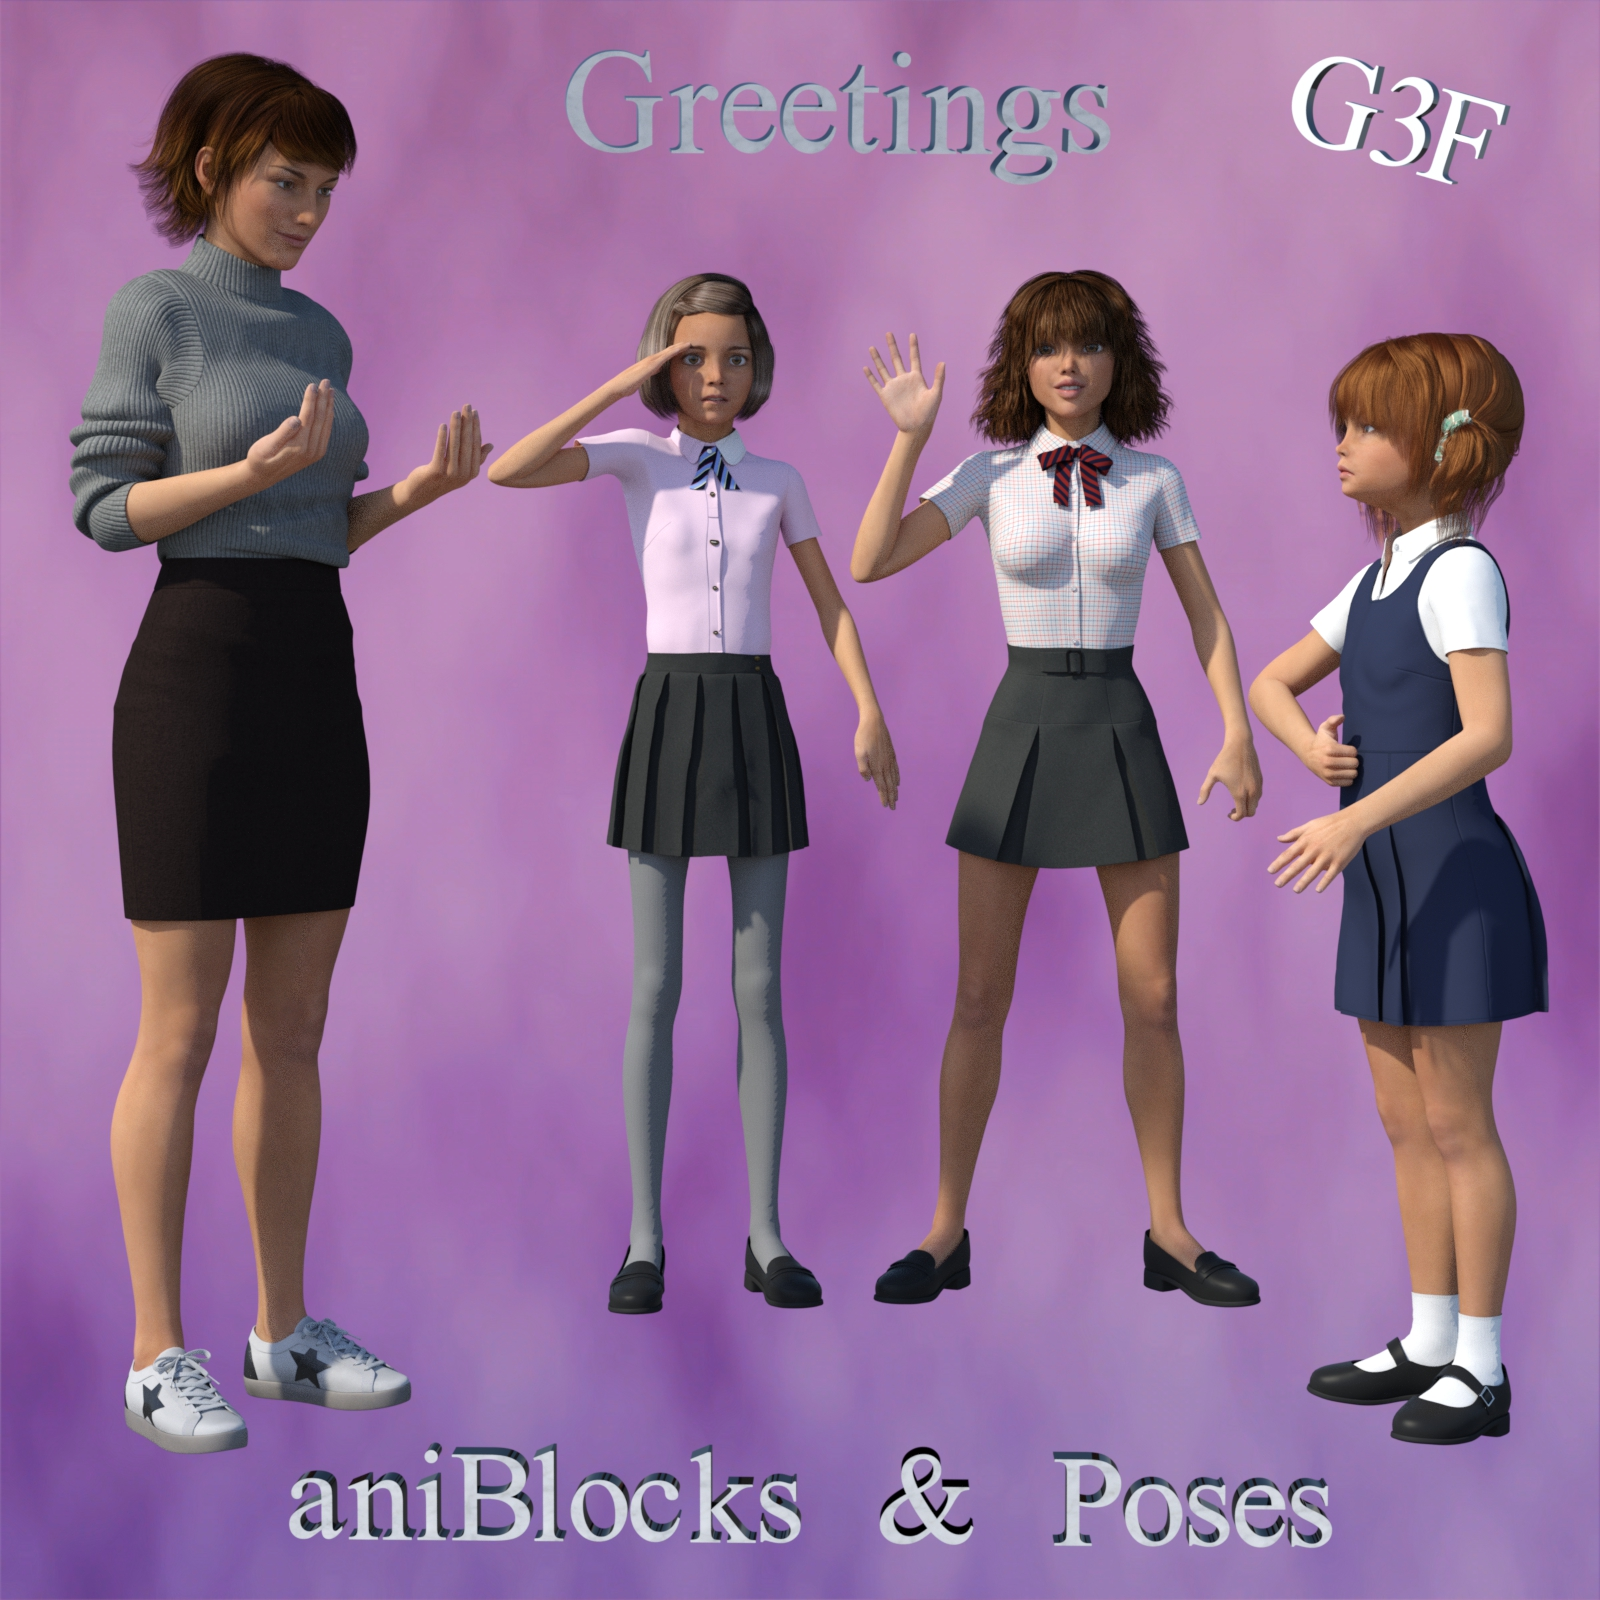 BSL ASL Greetings - aniBlocks and Poses for G3F